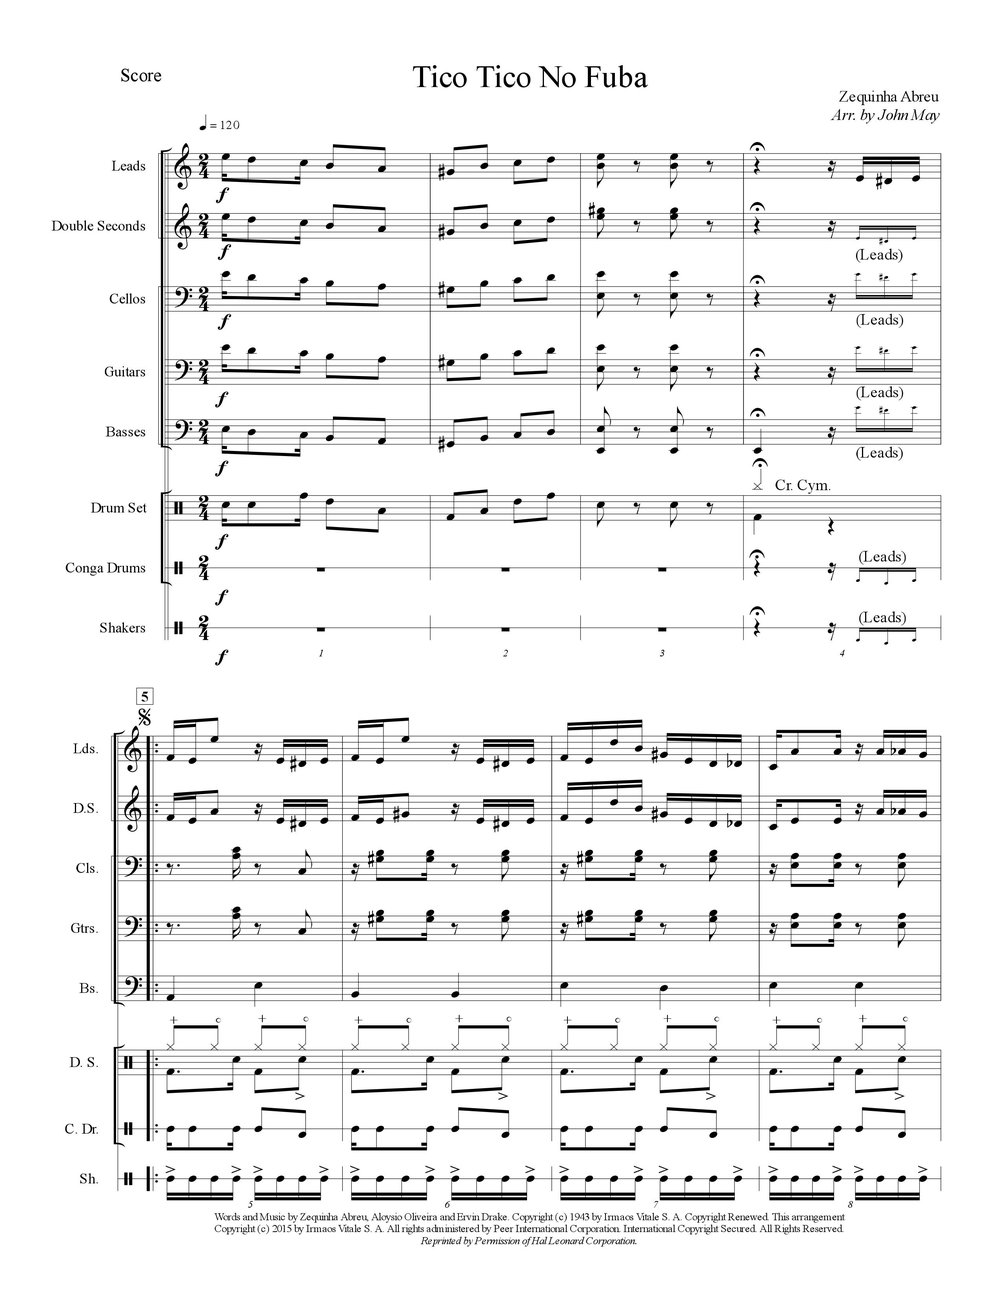 Tico Tico No Fuba-Score Sample.jpg